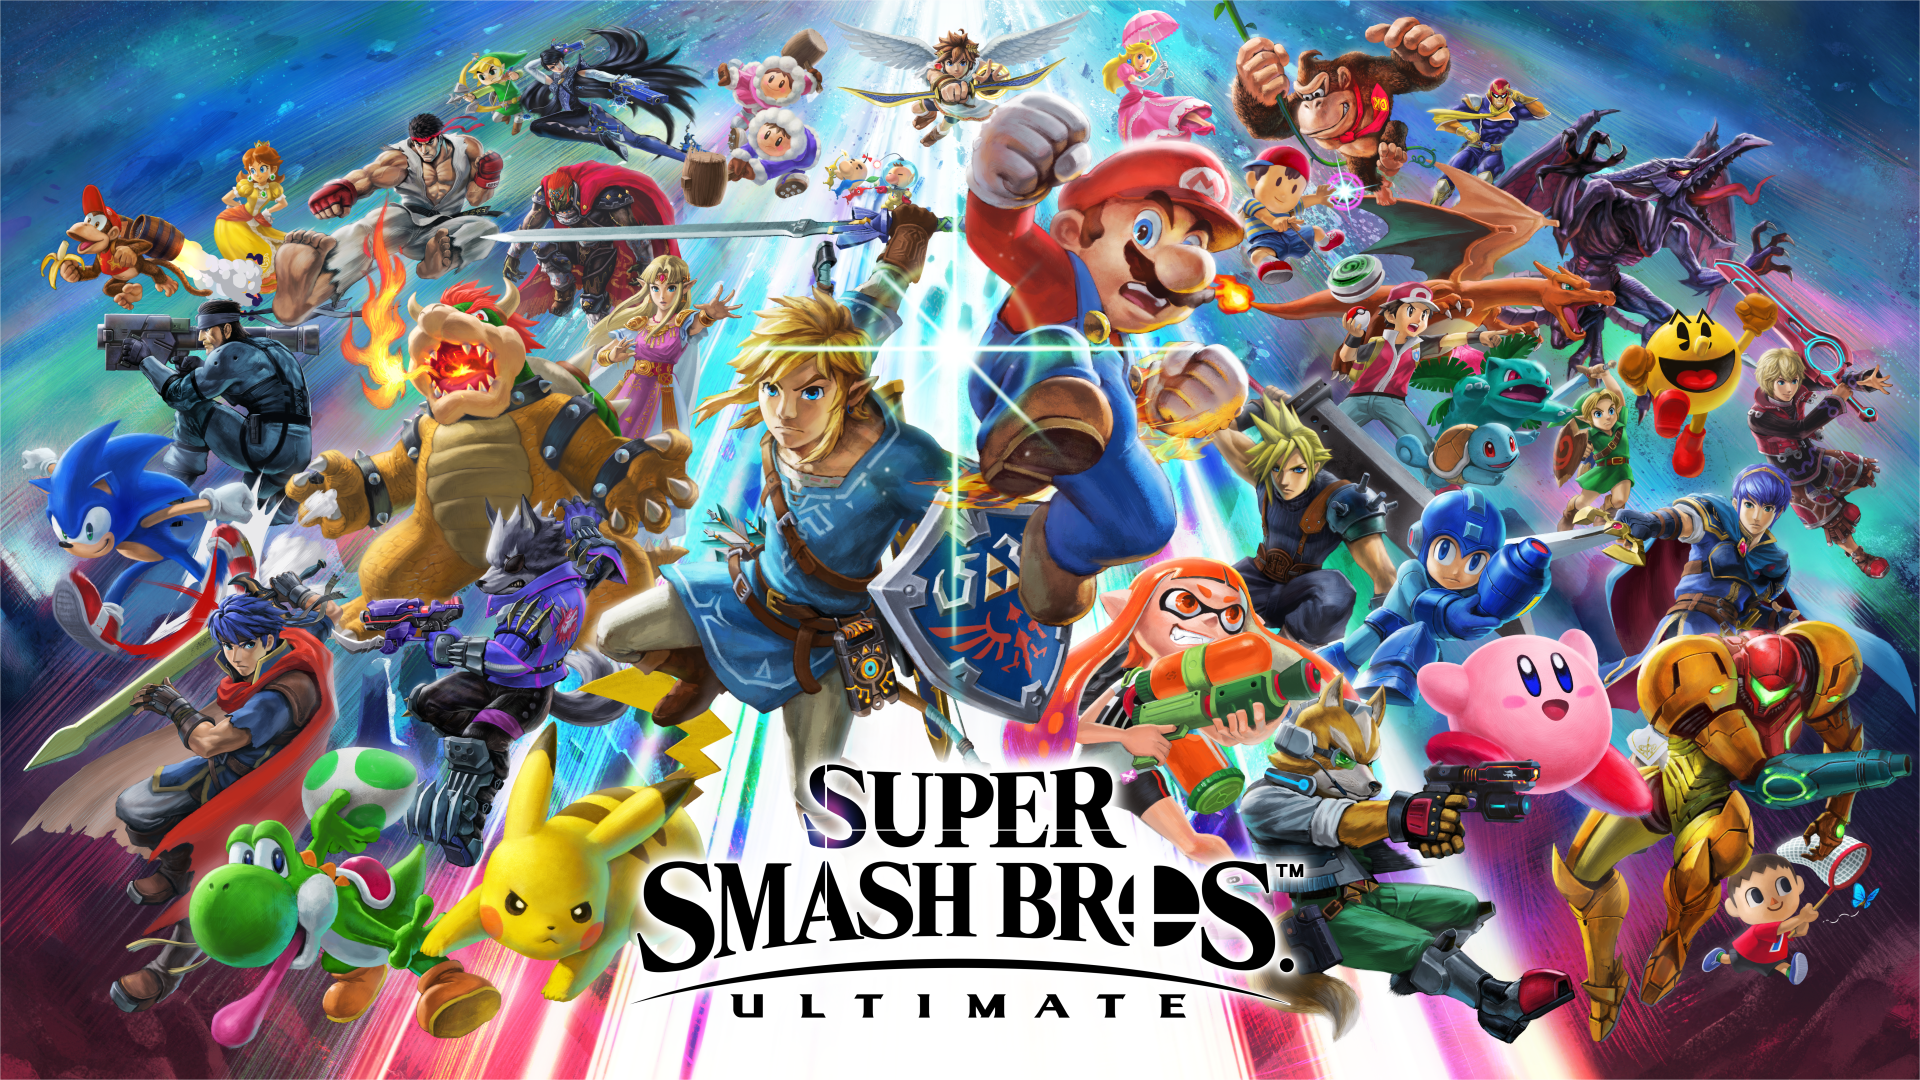 212 Super Smash Bros Ultimate Hd Wallpapers Background Images